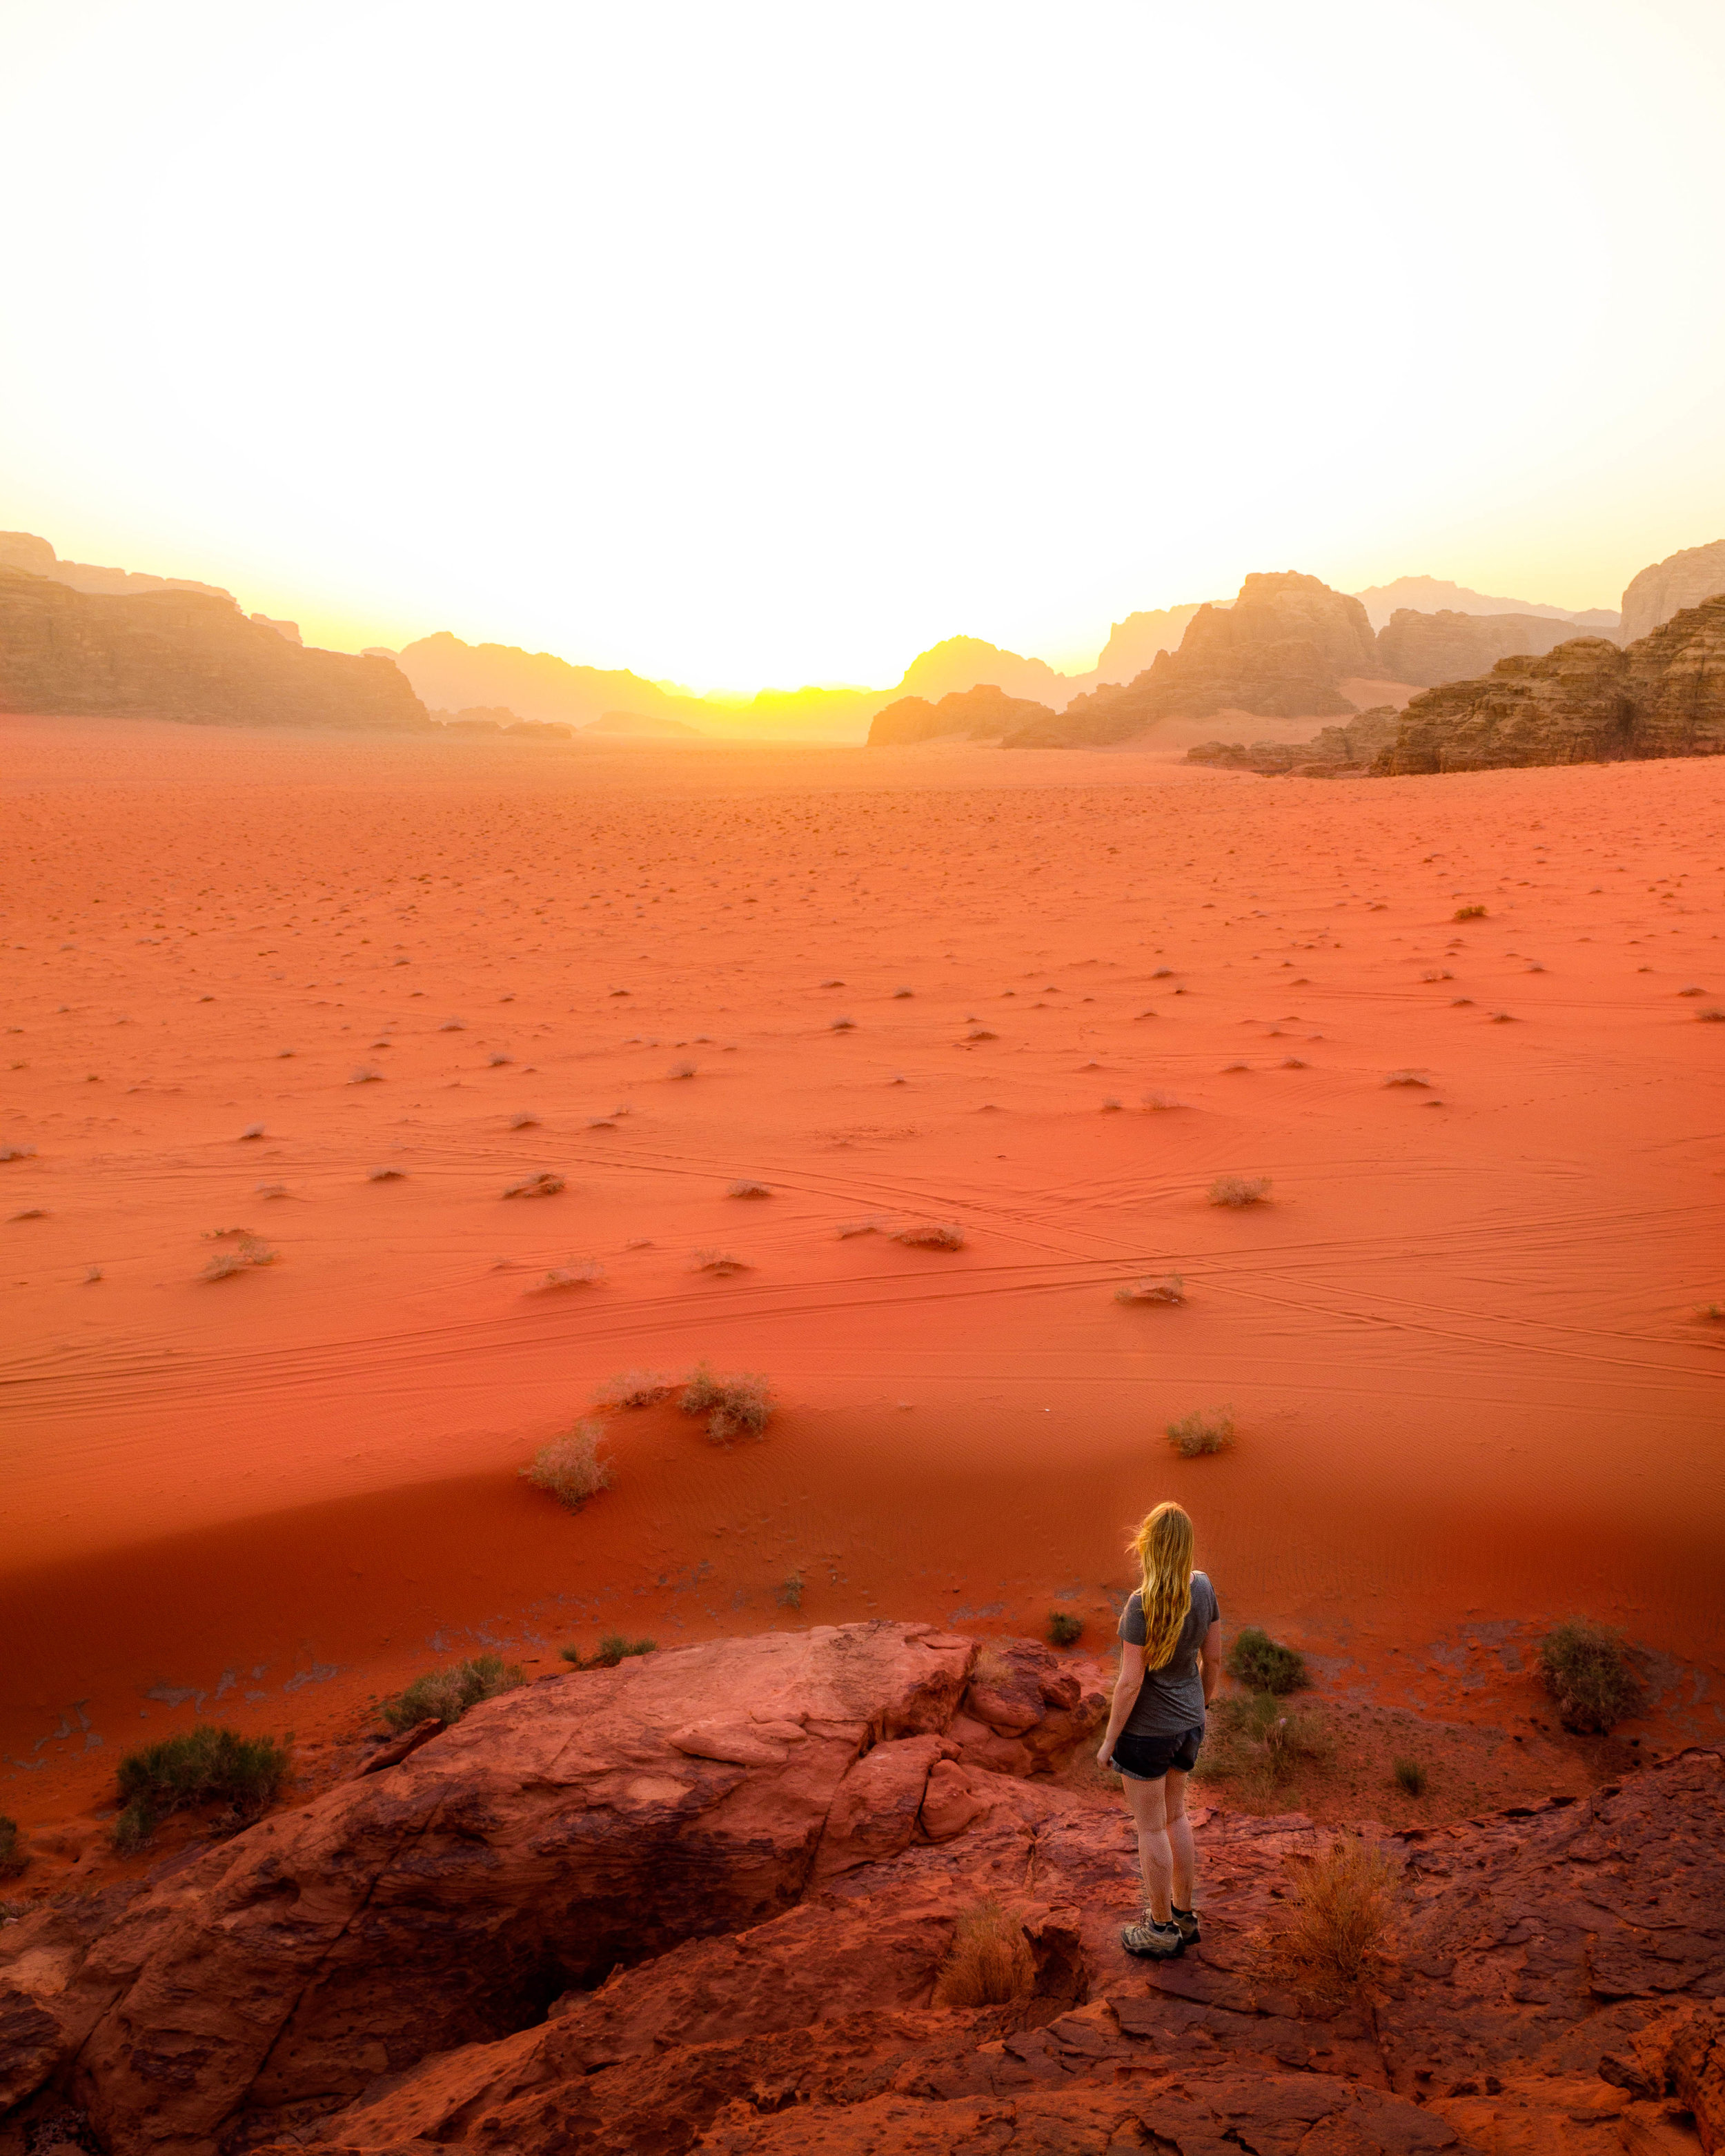 Instagrammable spots in Jordan - Sunset in Wadi Rum